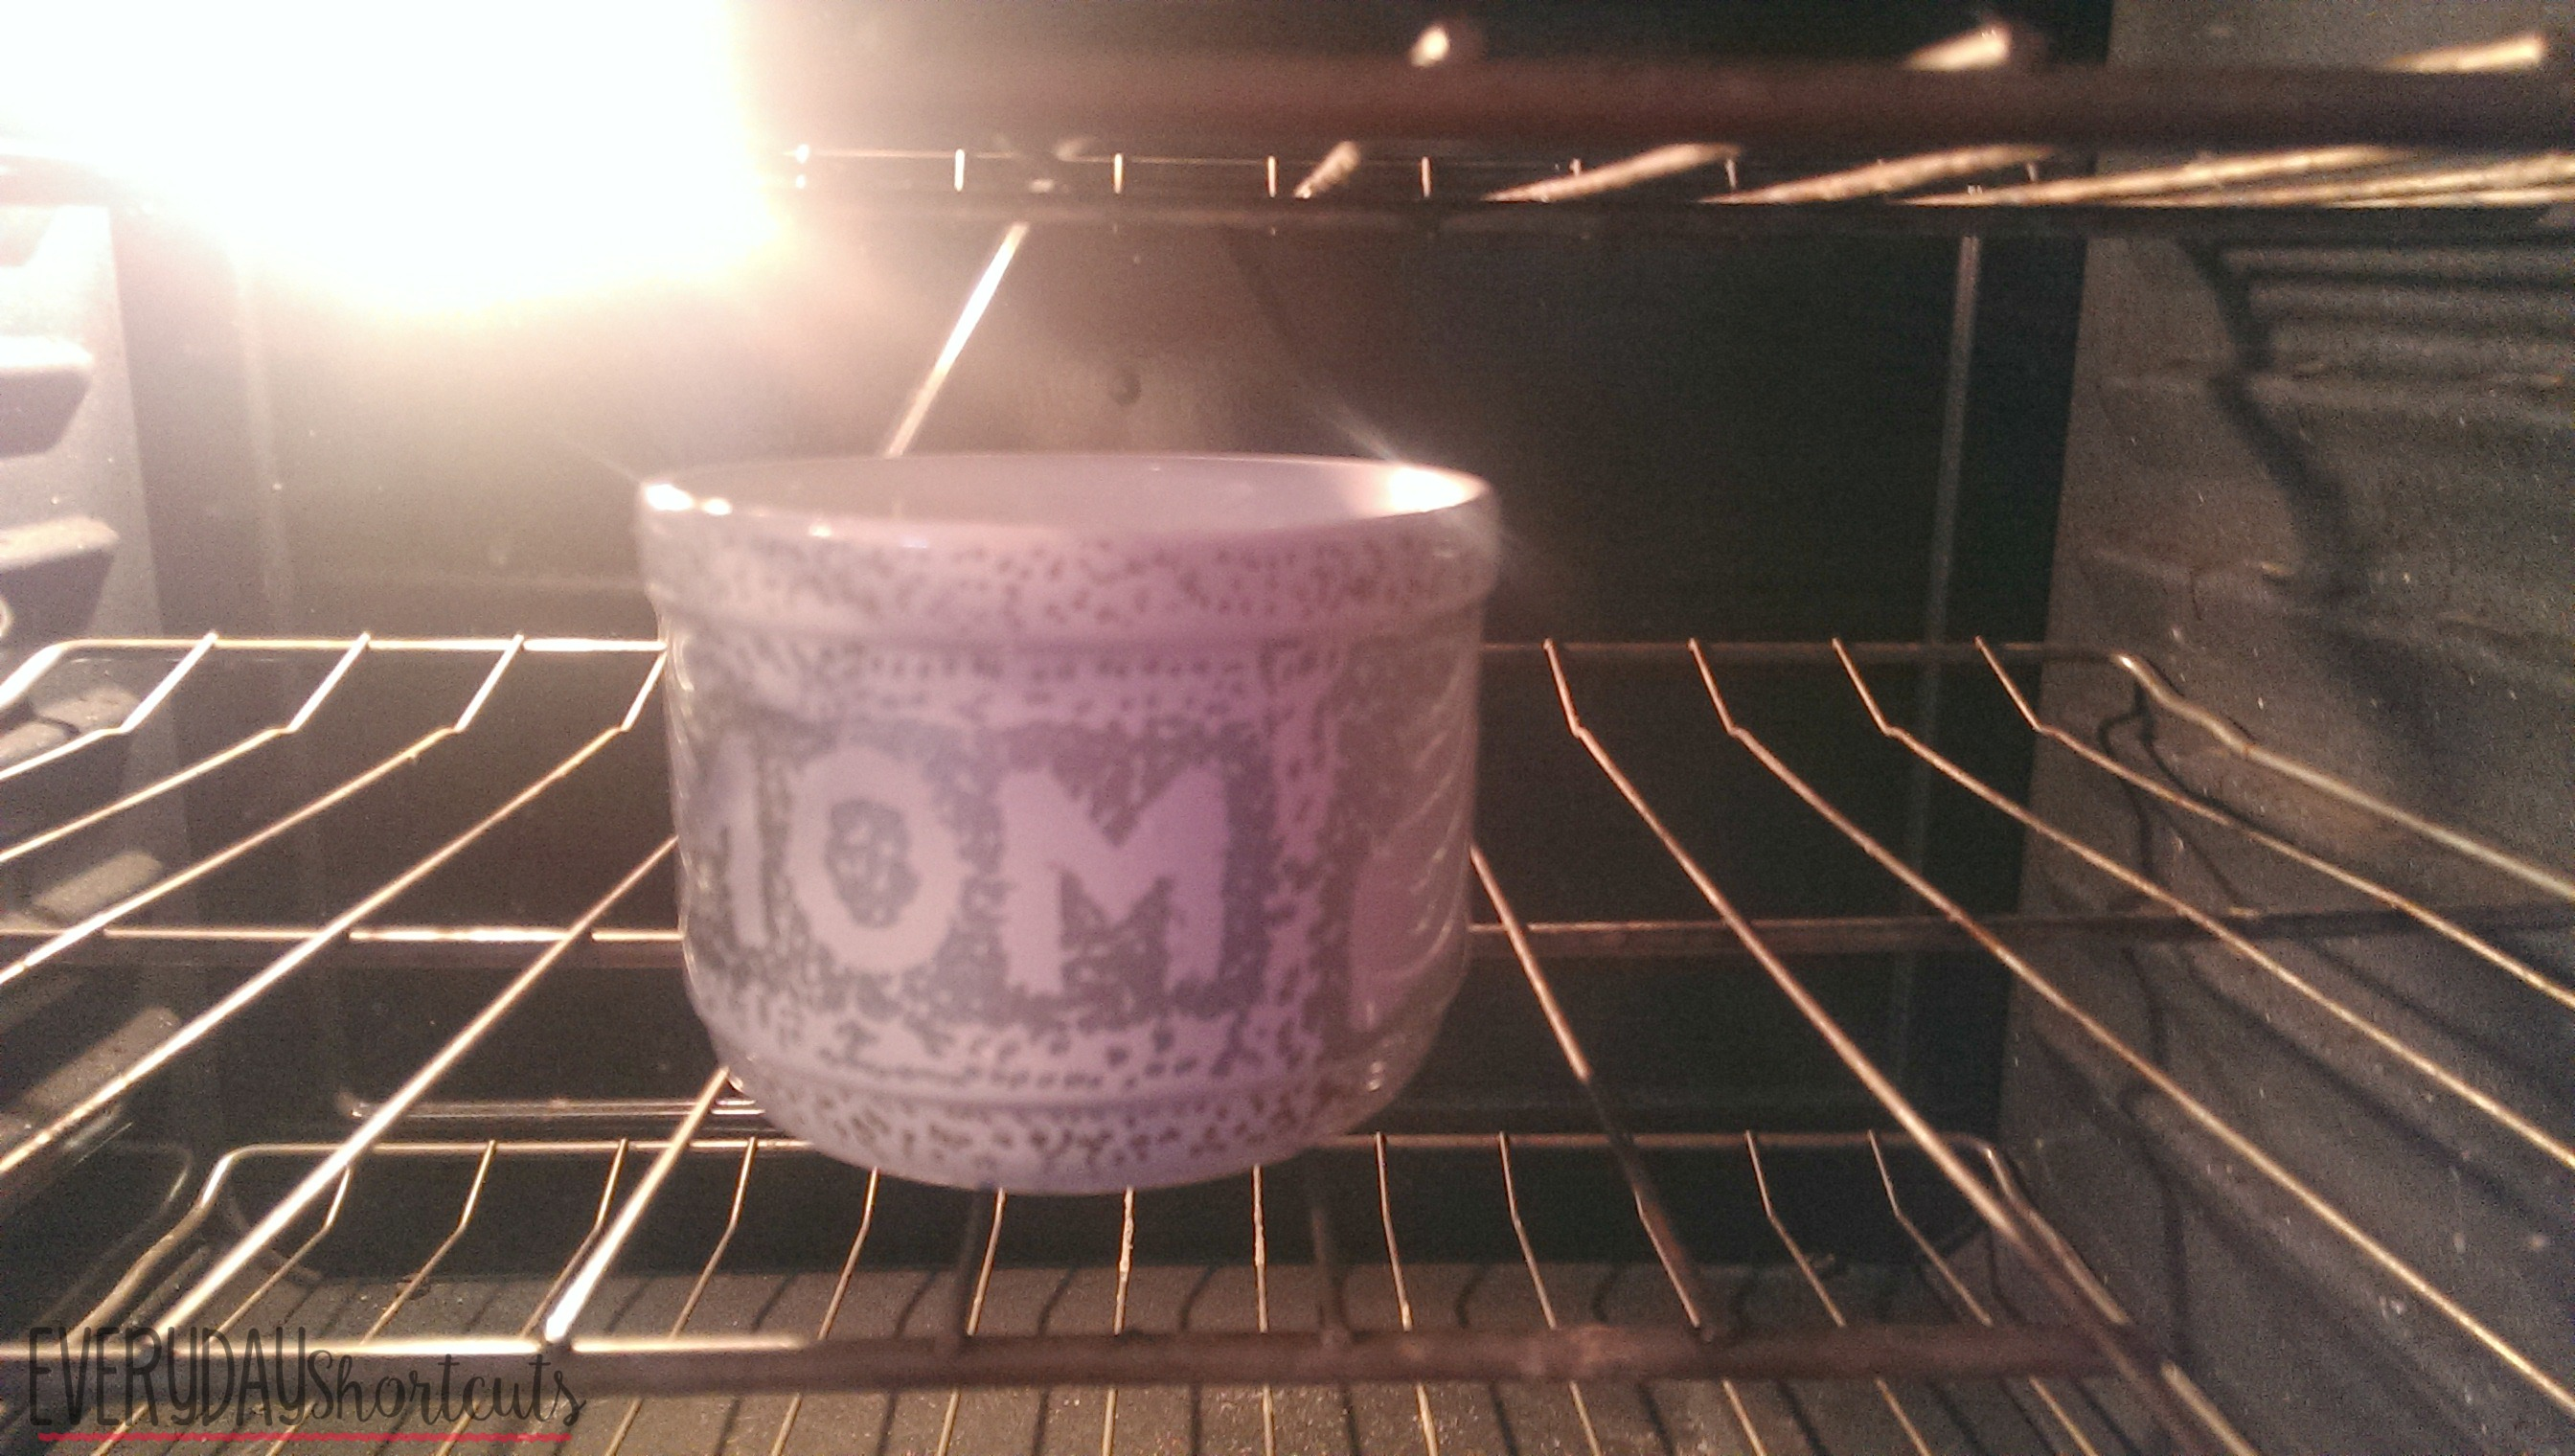 mom sharpie mug in the oven